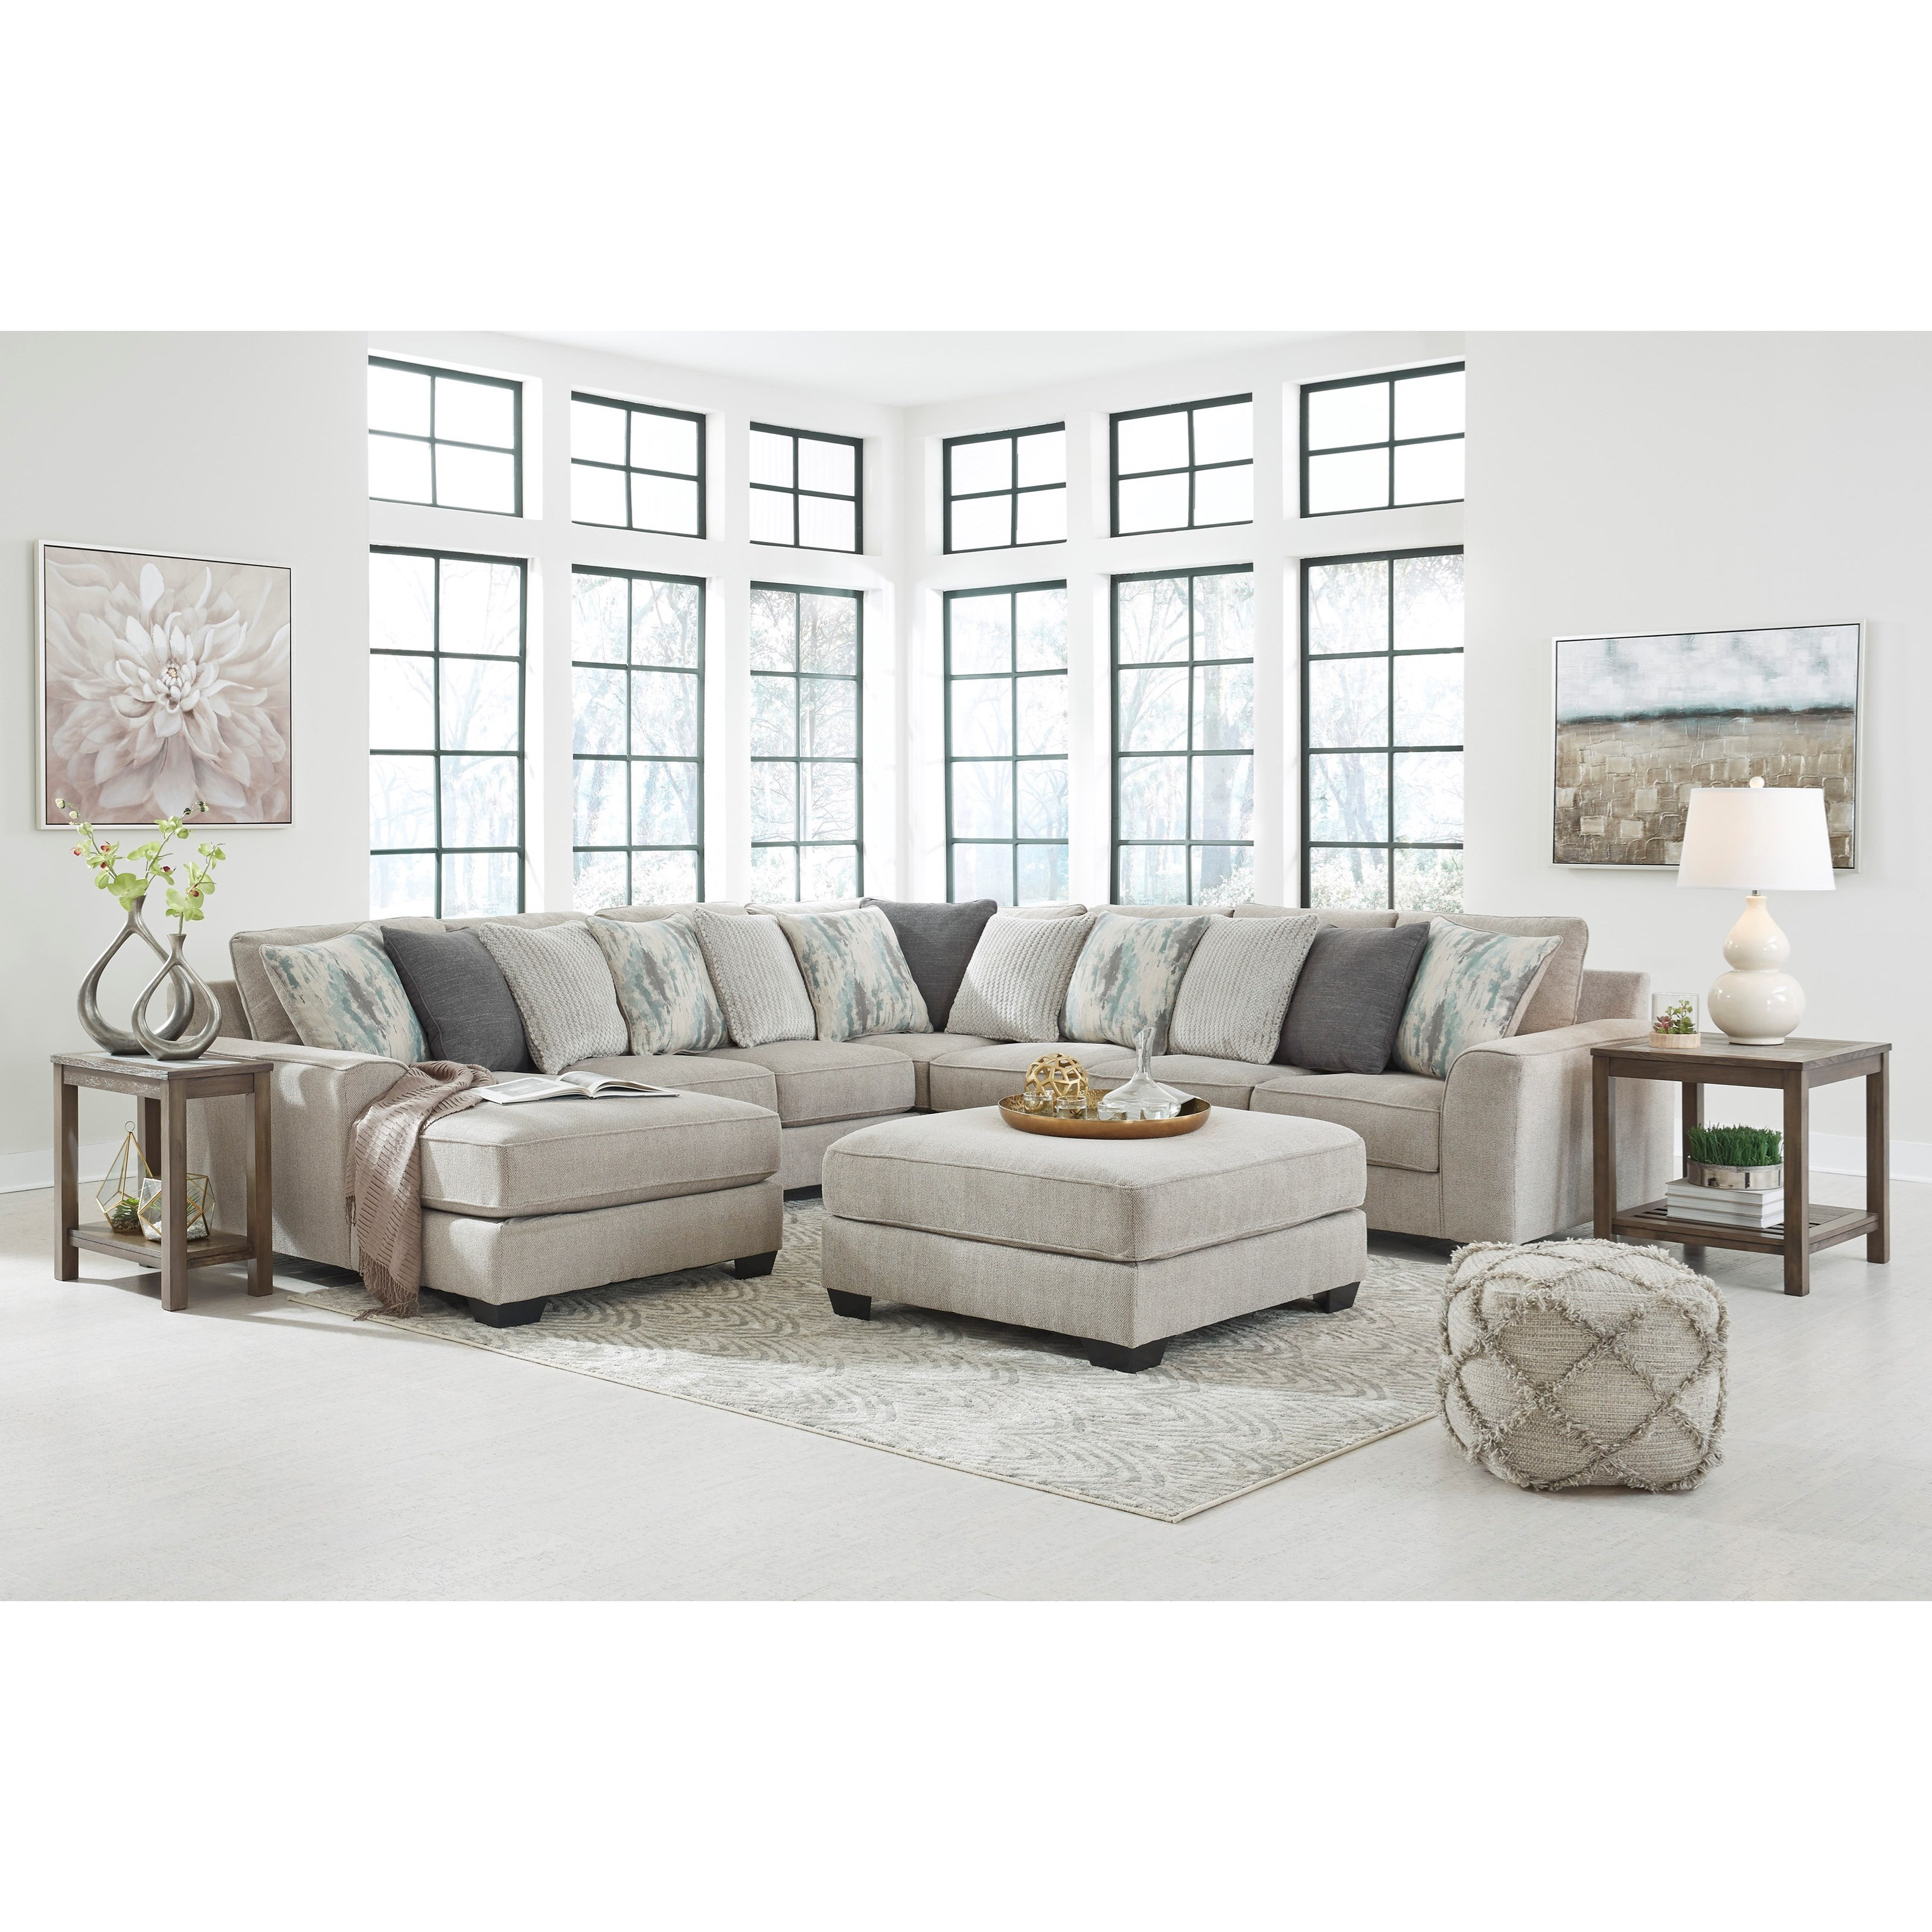 Ardsley Stationary Living Room Group by Benchcraft at Standard Furniture